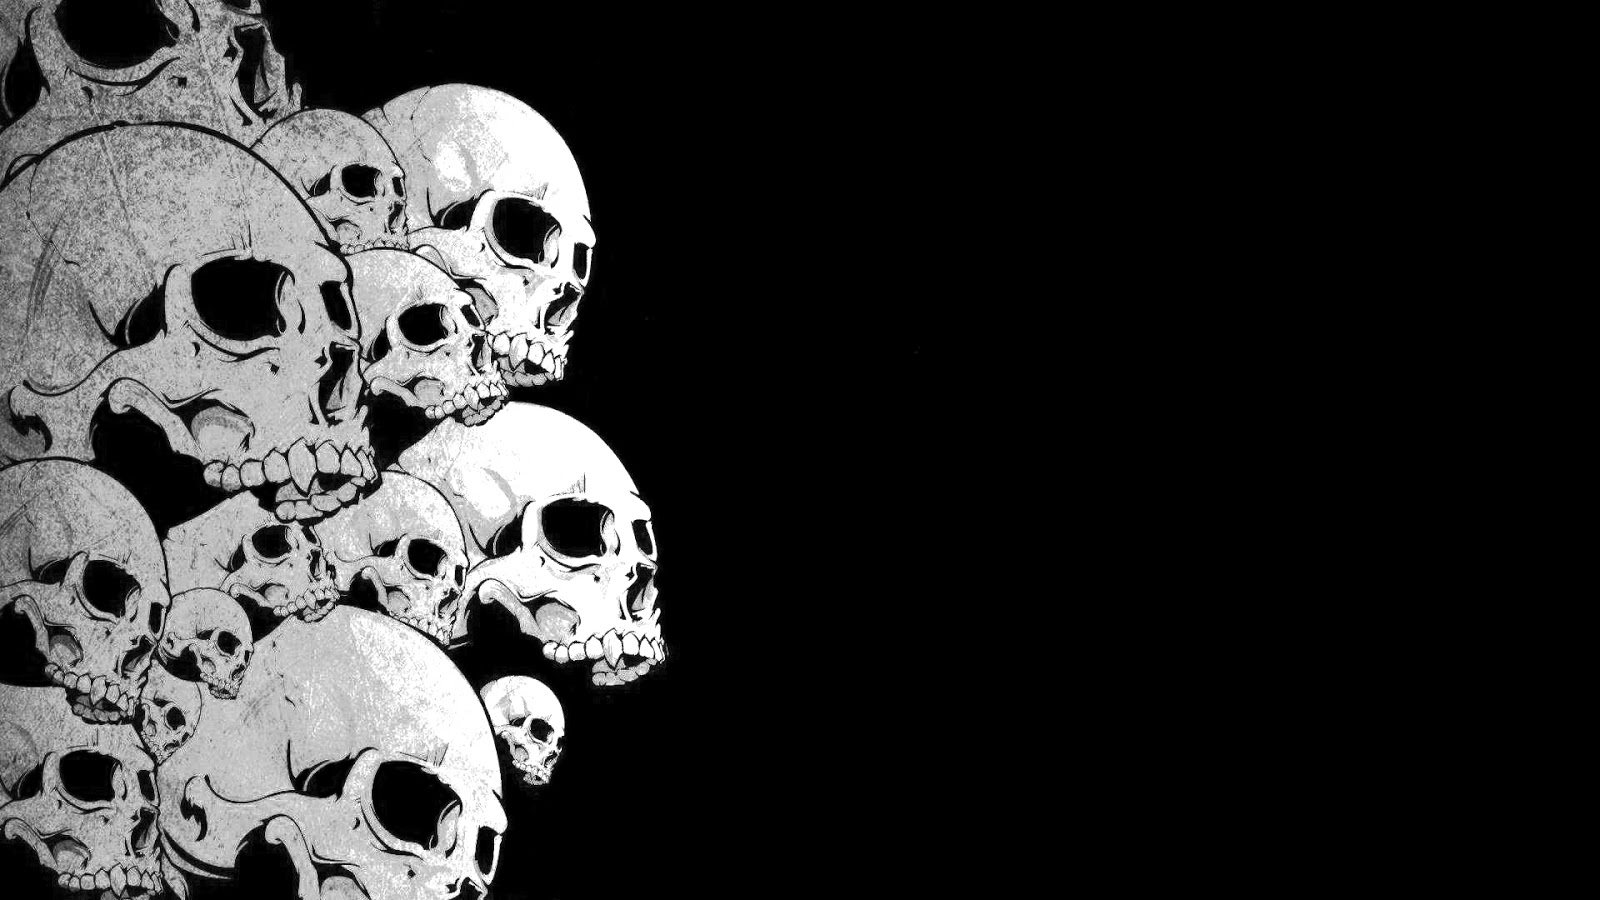 Great Wallpaper High Quality Black And White - 6019_1_other_wallpapers_hd_wallpapers_skulls_black  2018_107866.jpg